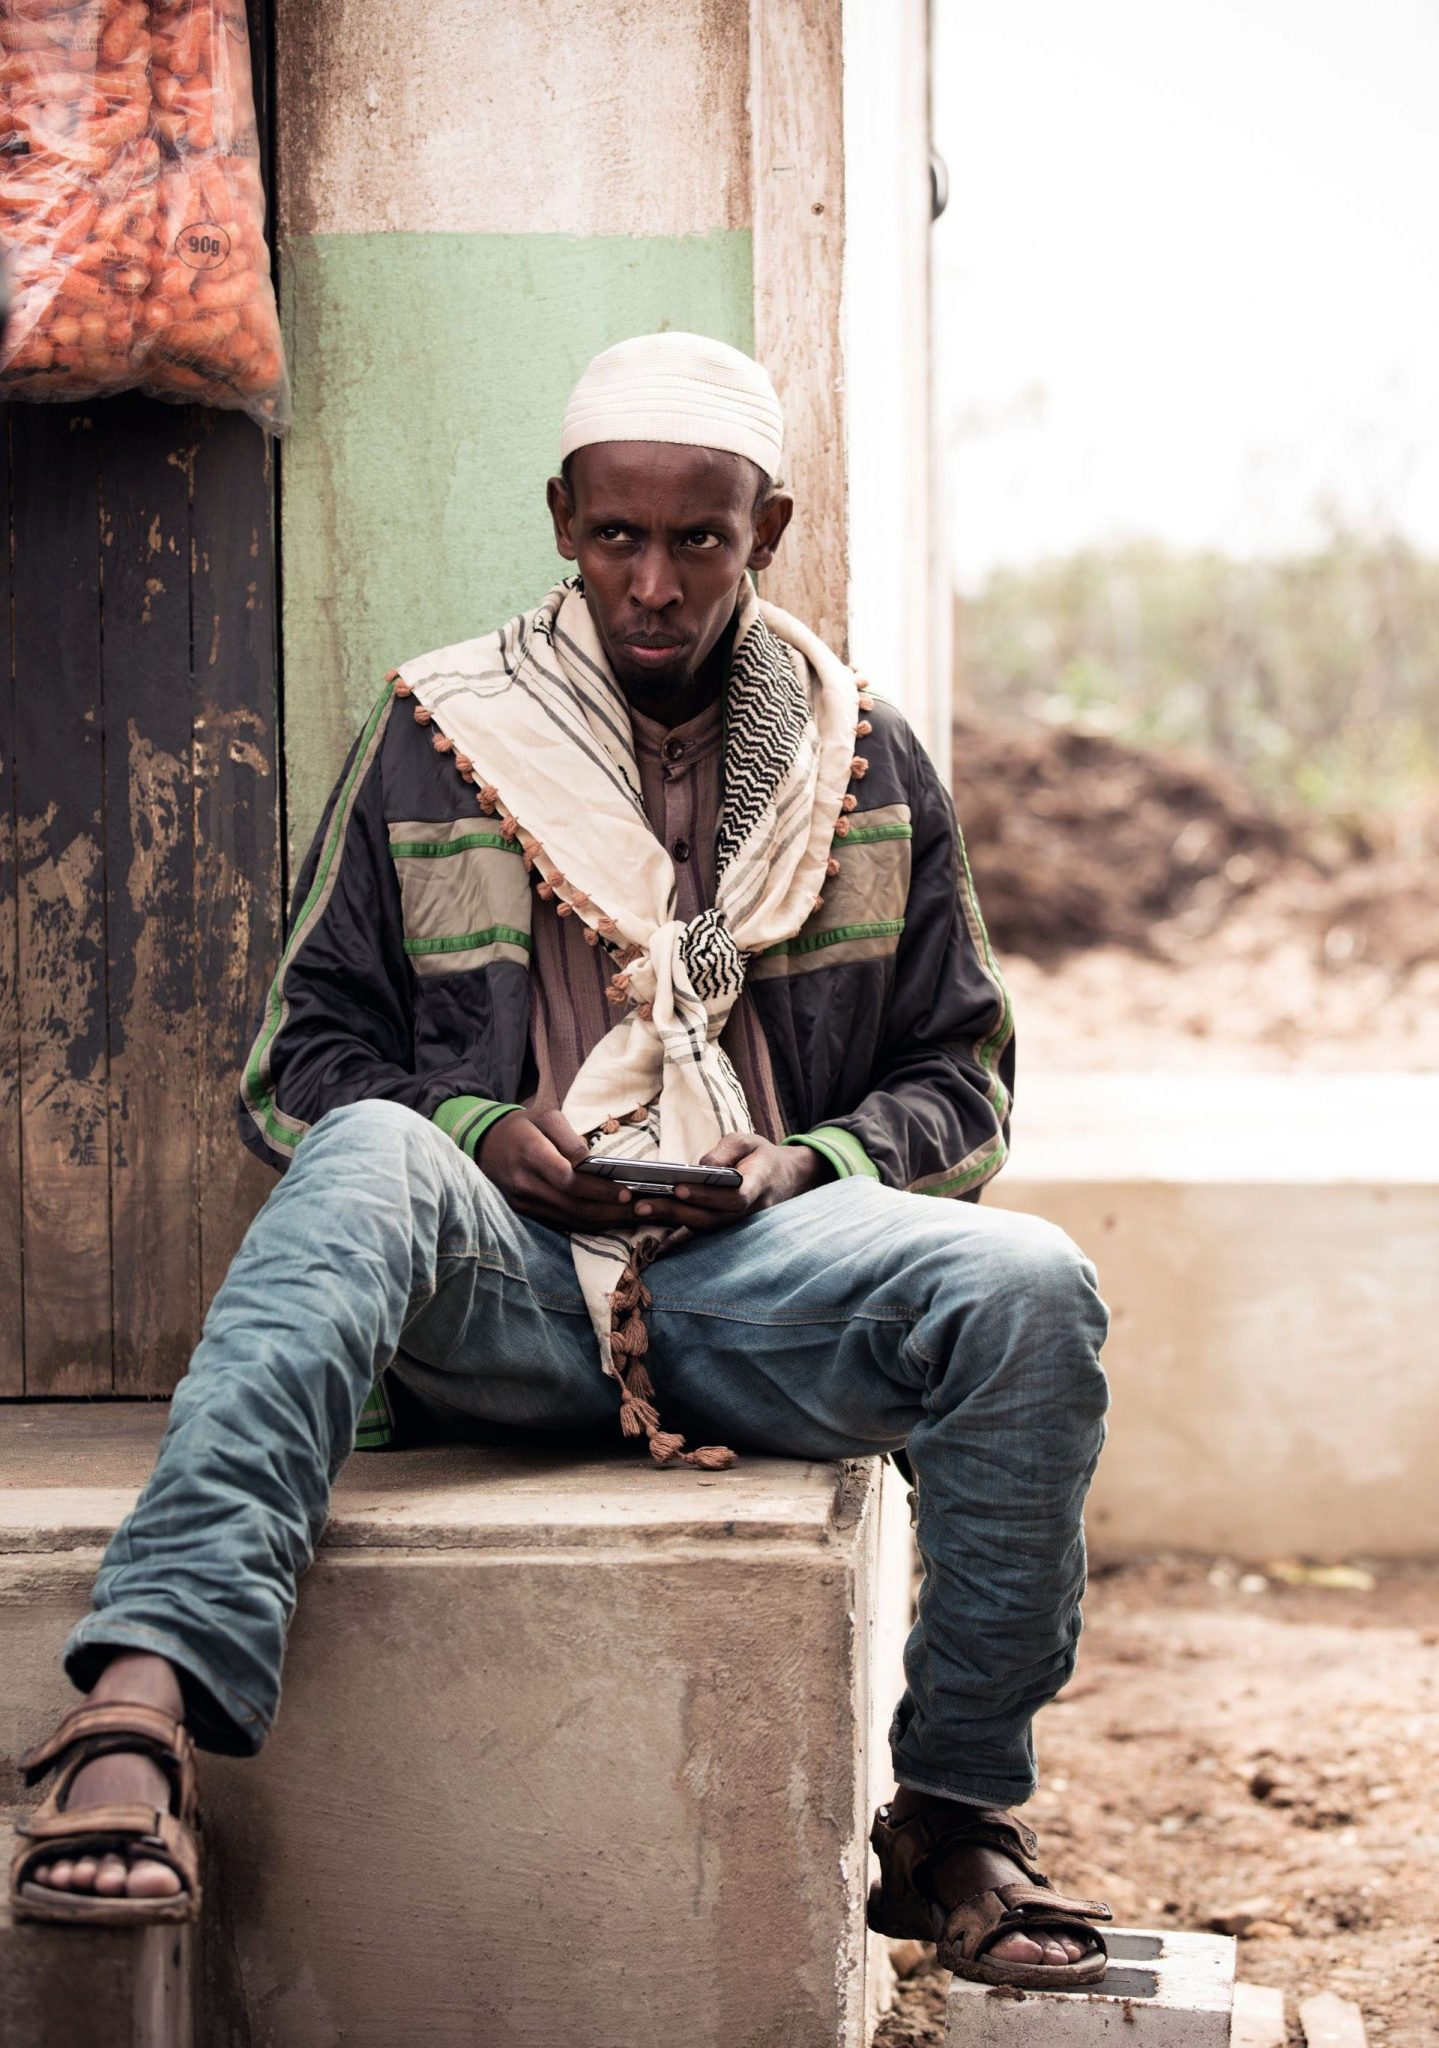 here-s-everything-you-should-know-about-new-blade-runner-2-star-barkhad-abdi-barkhad-ab-1039415